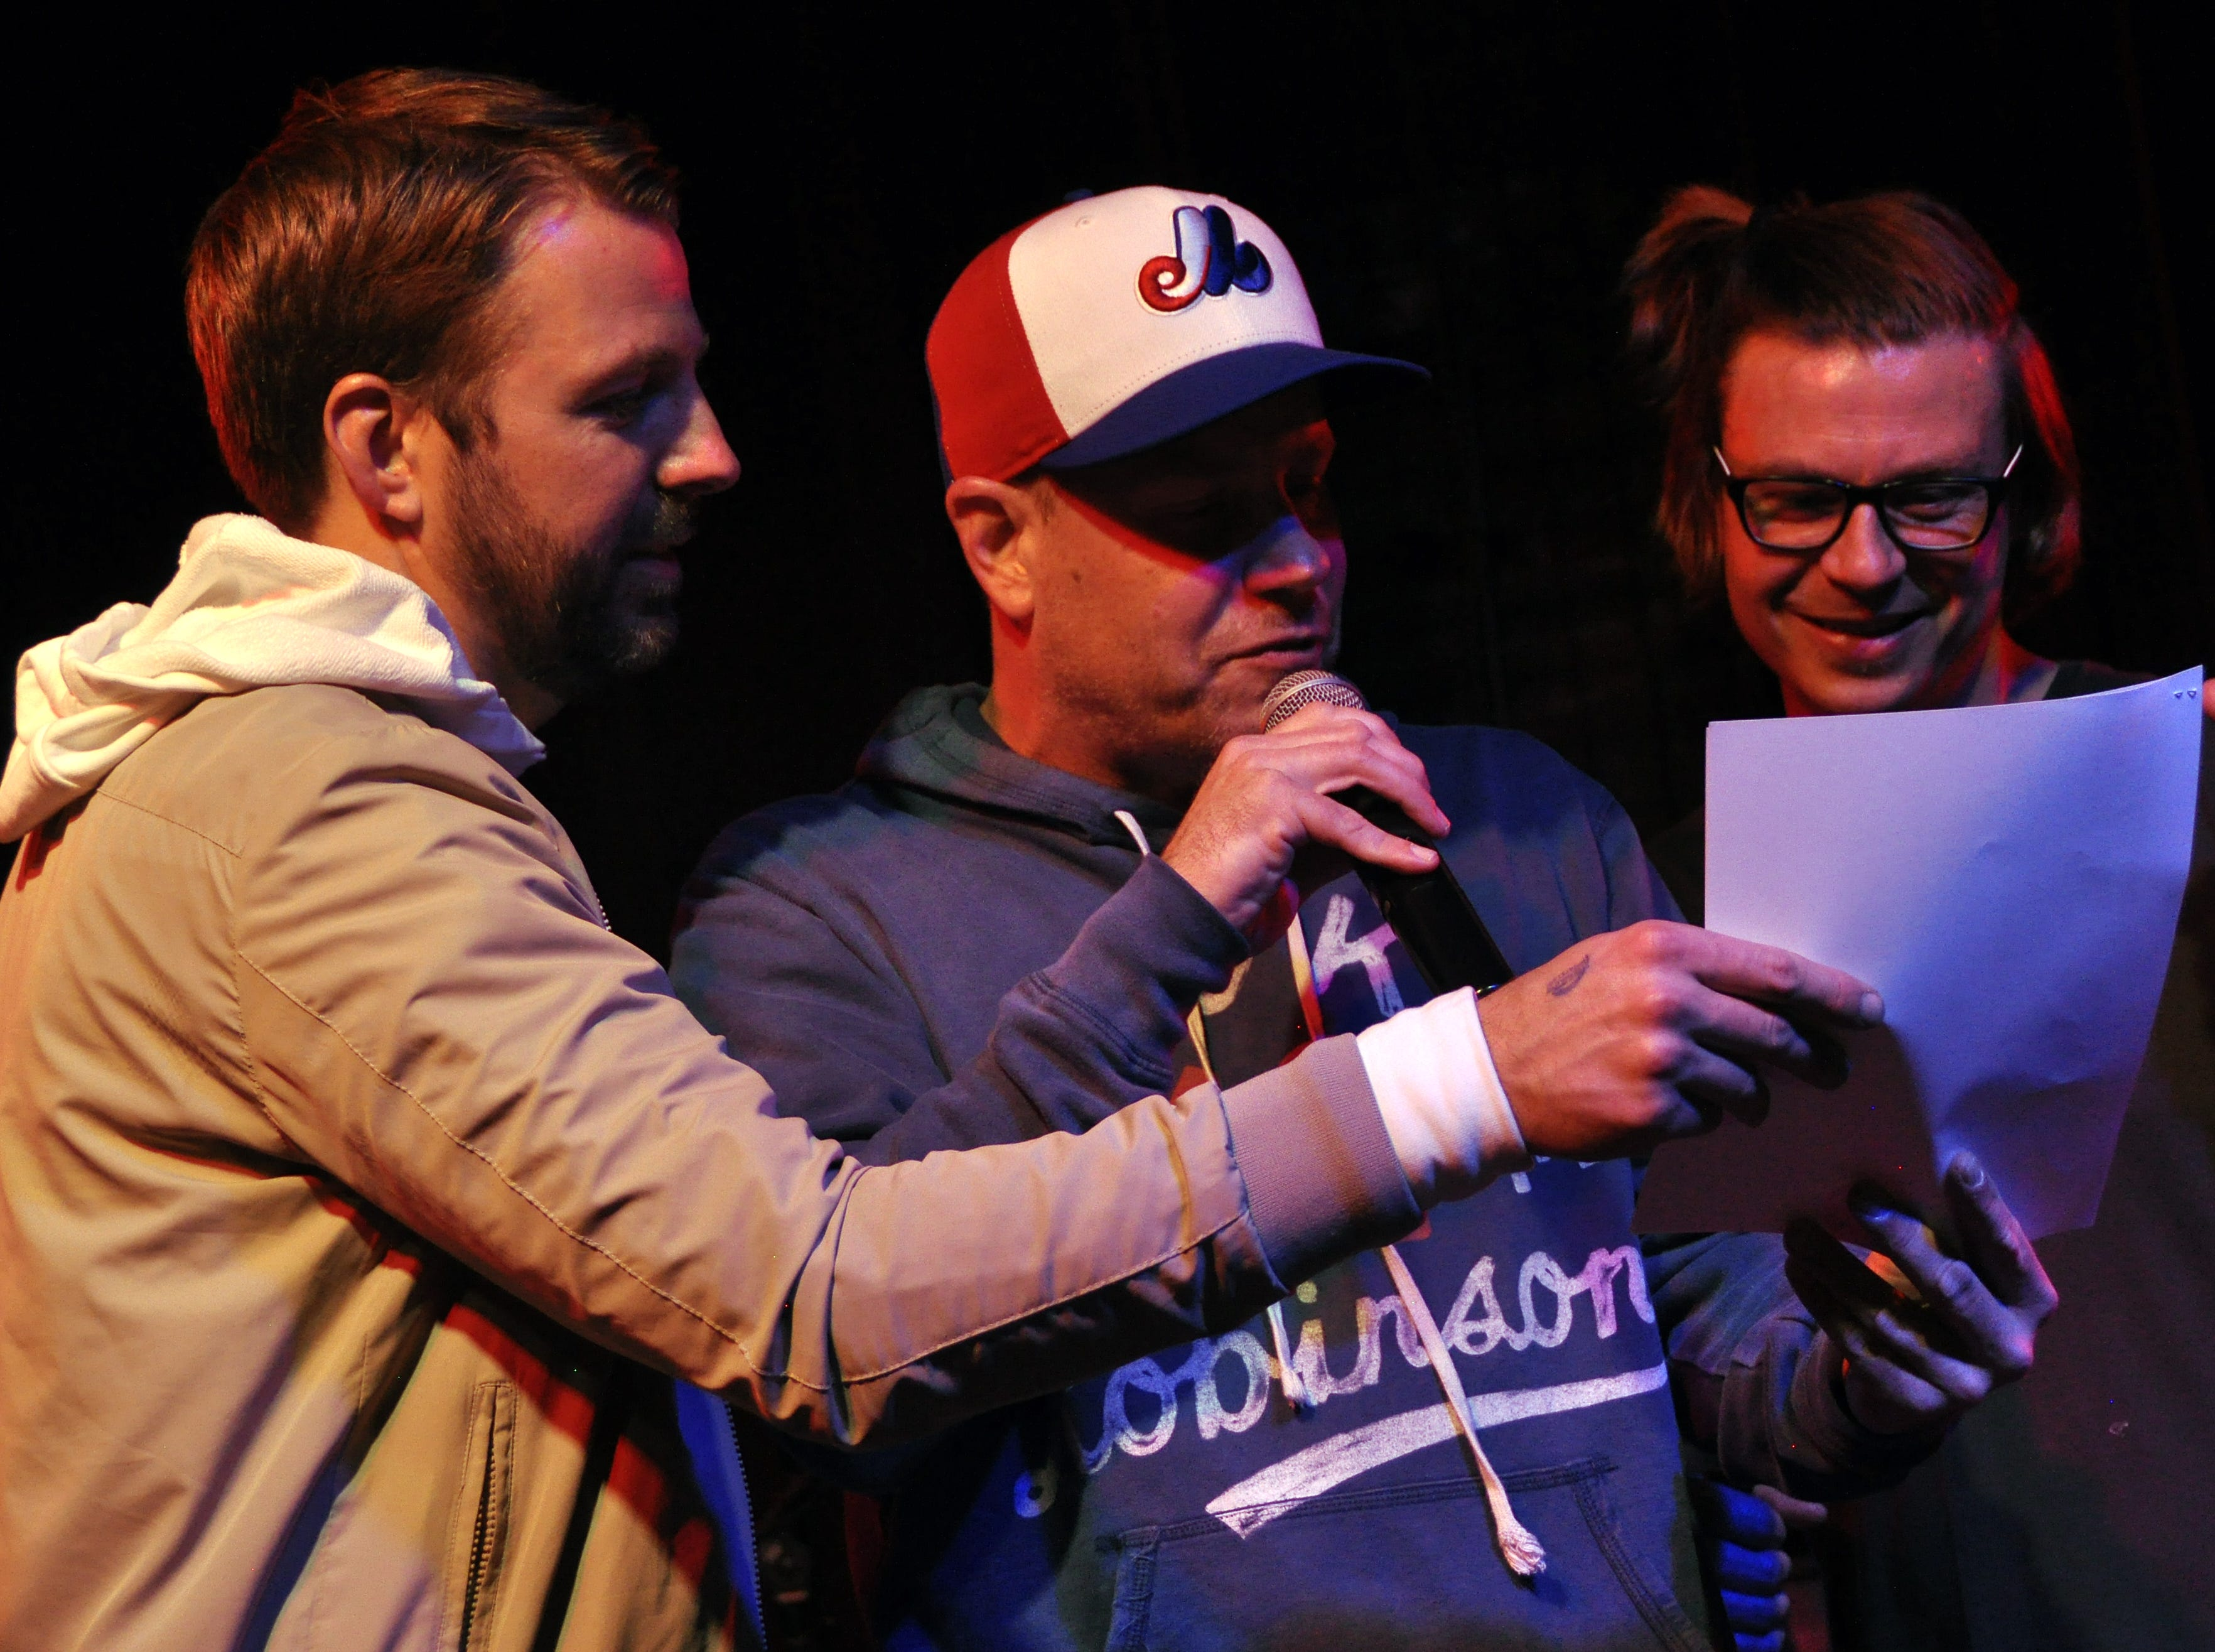 Chuck Beck, center, works through Public Enemy's 'Fight the Power' with Wes, right, and Danny Eisenhauer during the 10th Annual Halloween Rap Karaoke show at Icon Lounge Friday night. The event is was created by the Sioux Falls band Soulcrate.